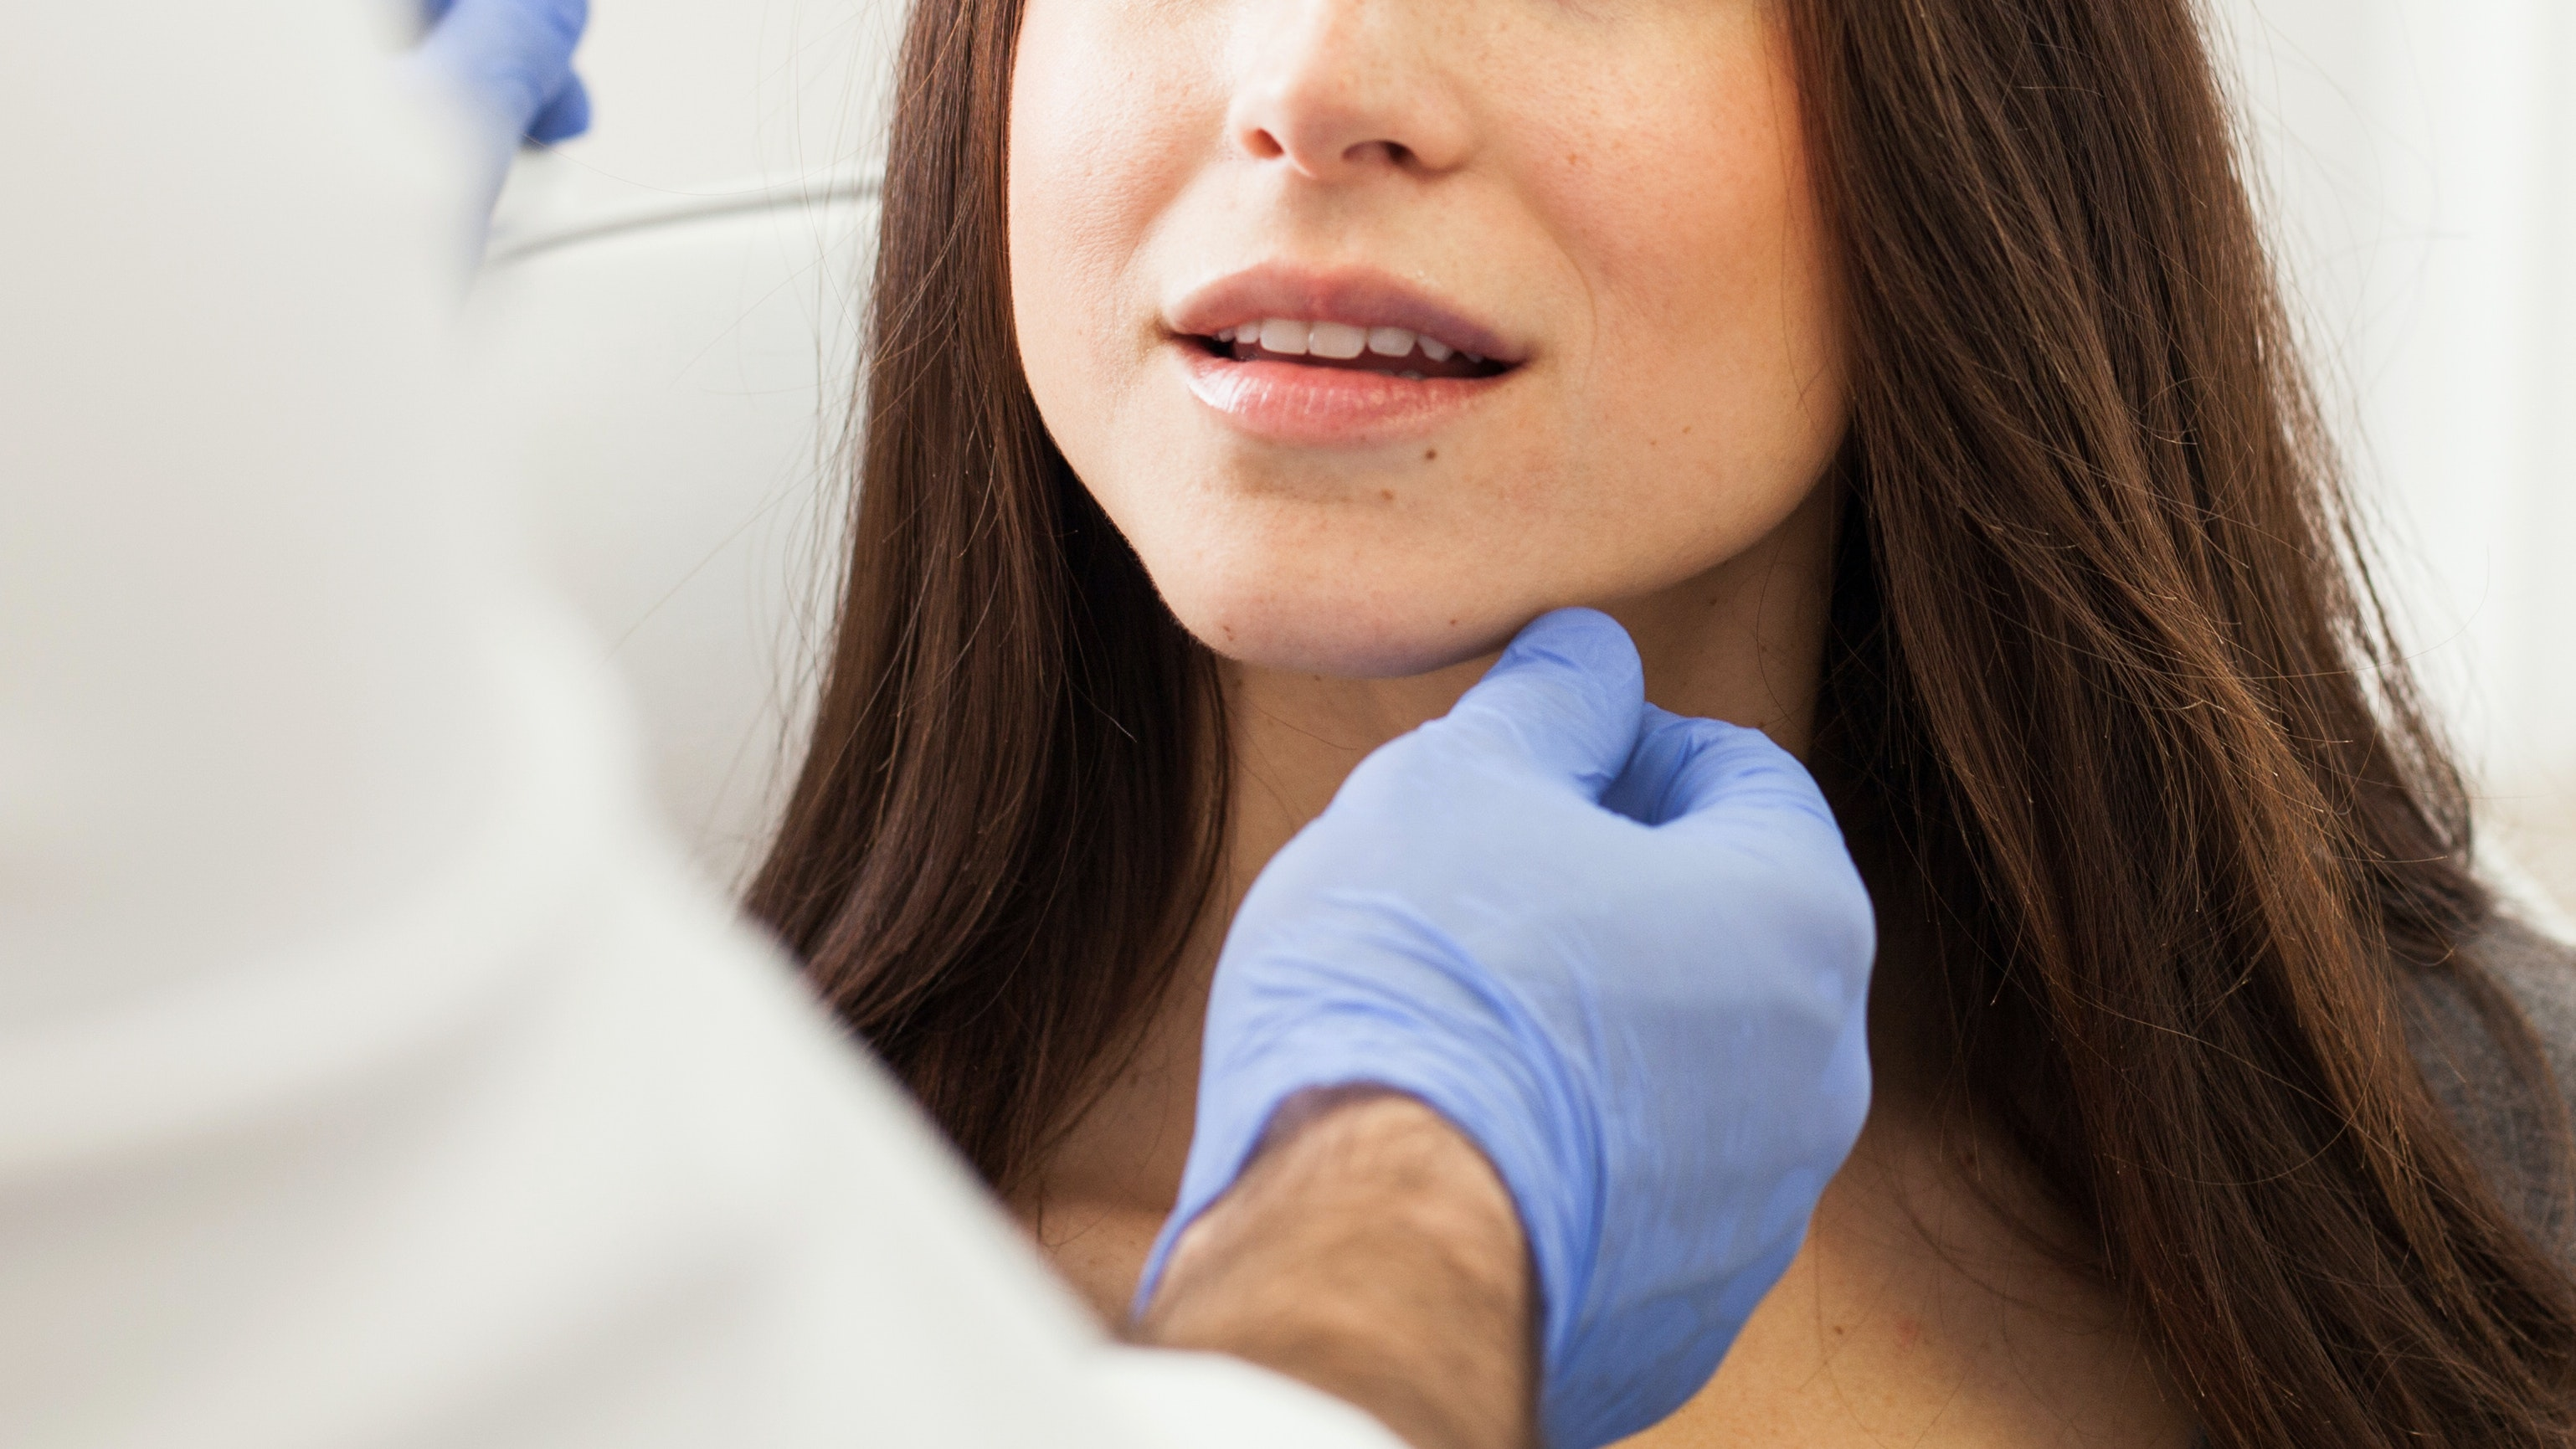 Woman getting injectables at doctor